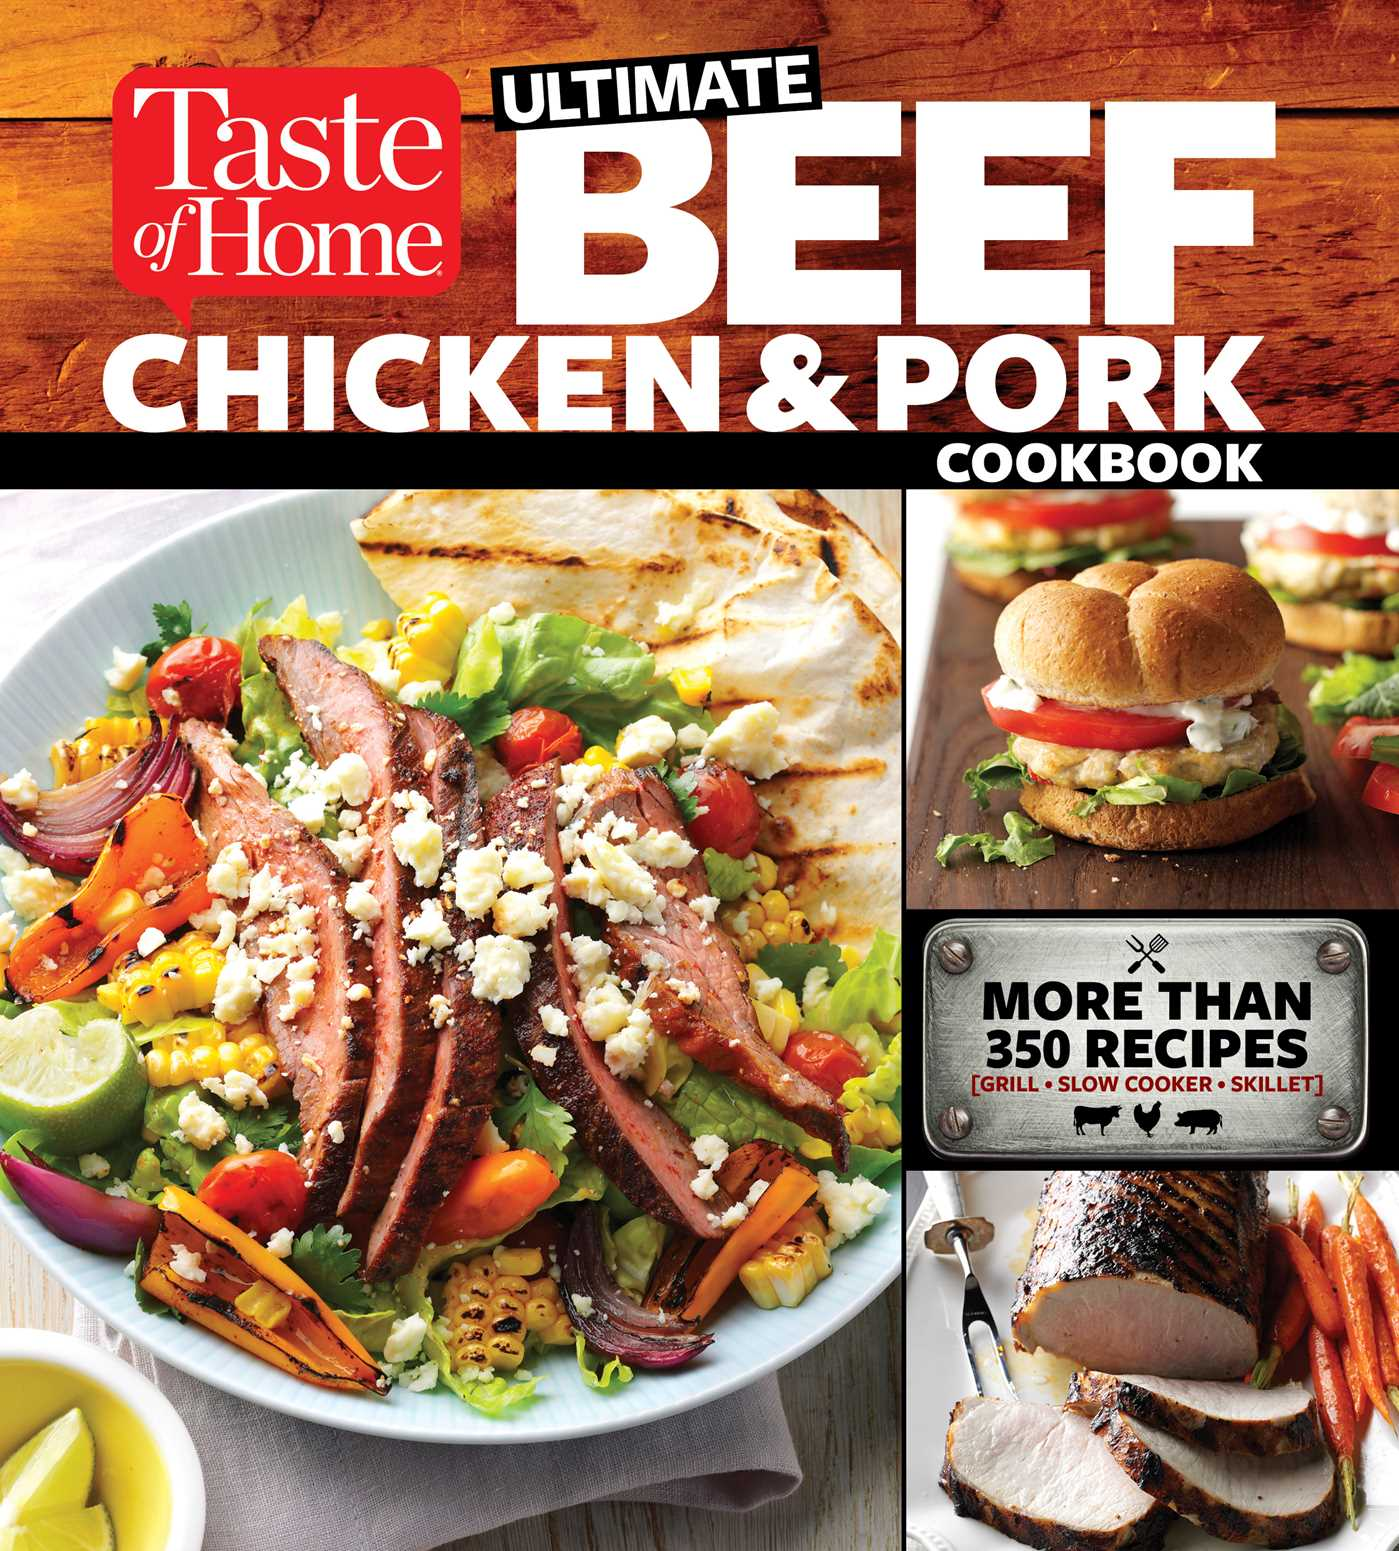 Taste of home ultimate beef chicken and pork cookbook book by book cover image jpg taste of home ultimate beef chicken and pork cookbook forumfinder Image collections